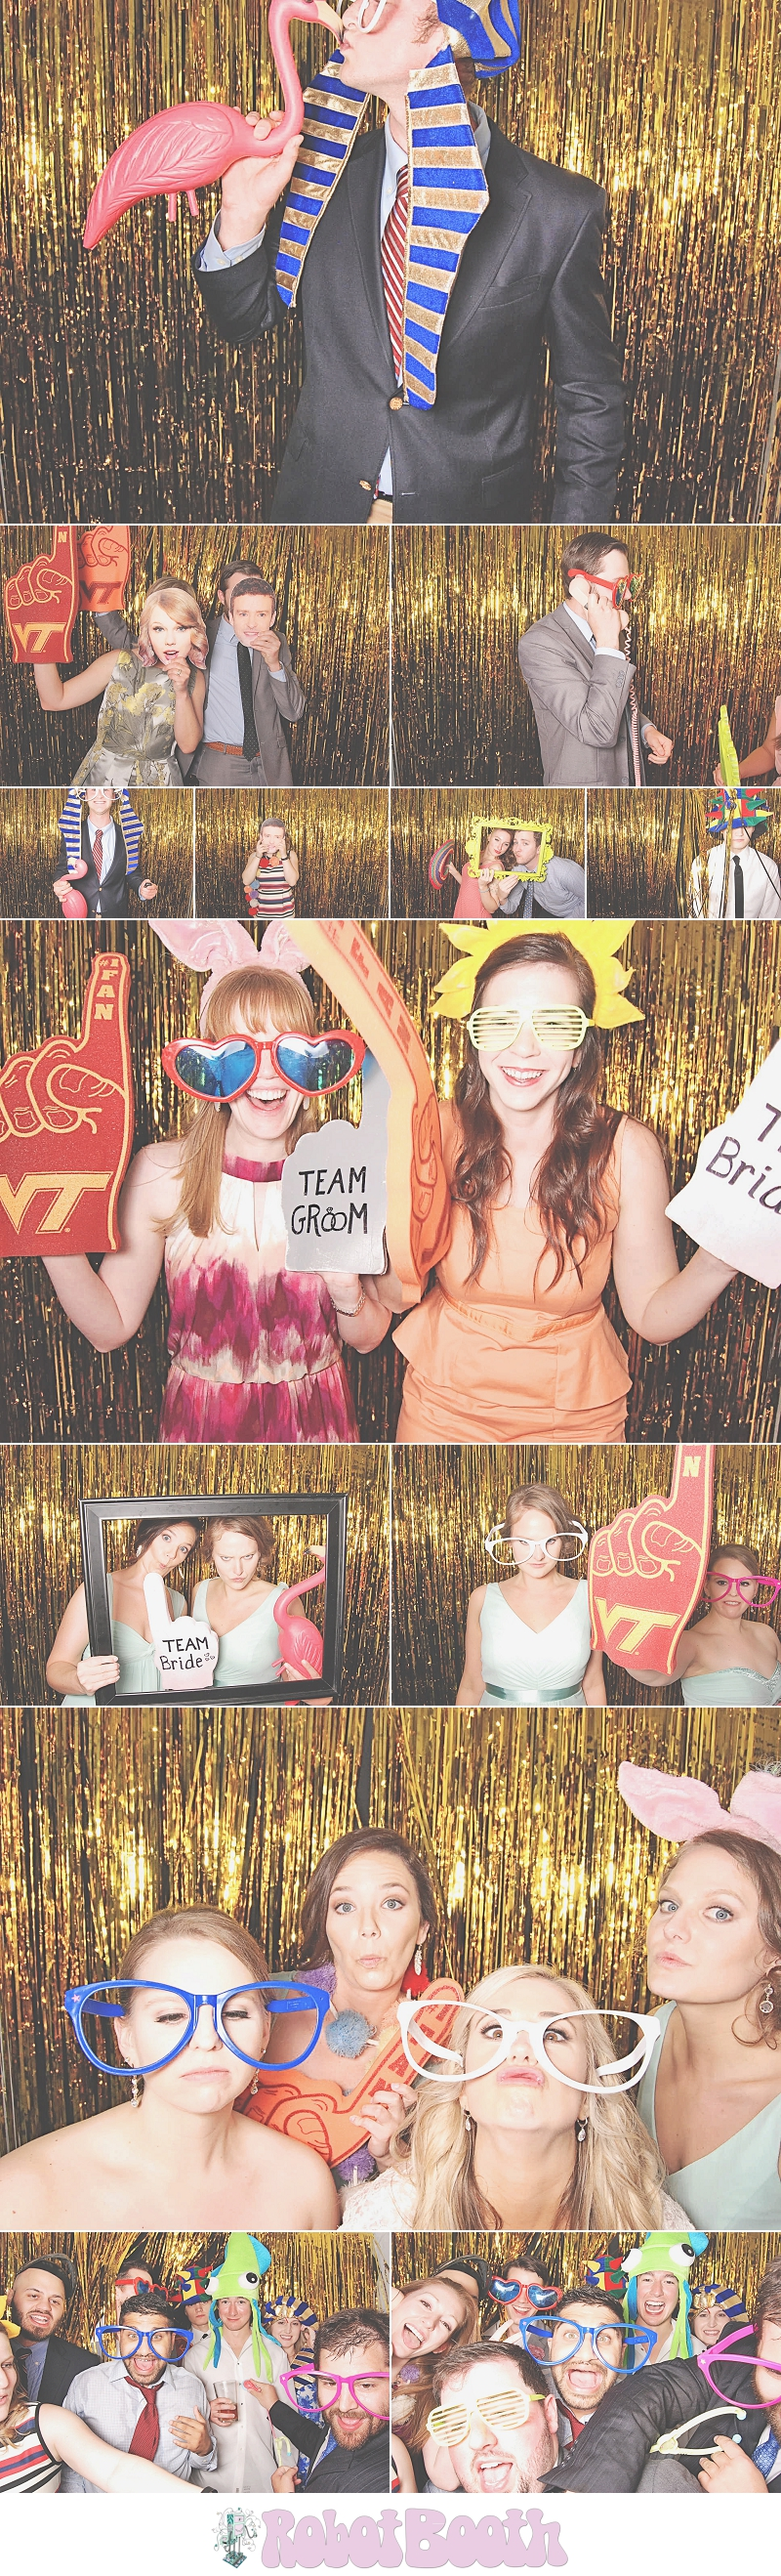 Atlanta Park Tavern PhotoBooth - Chrissy & Jonathan's Wedding - RobotBooth 1